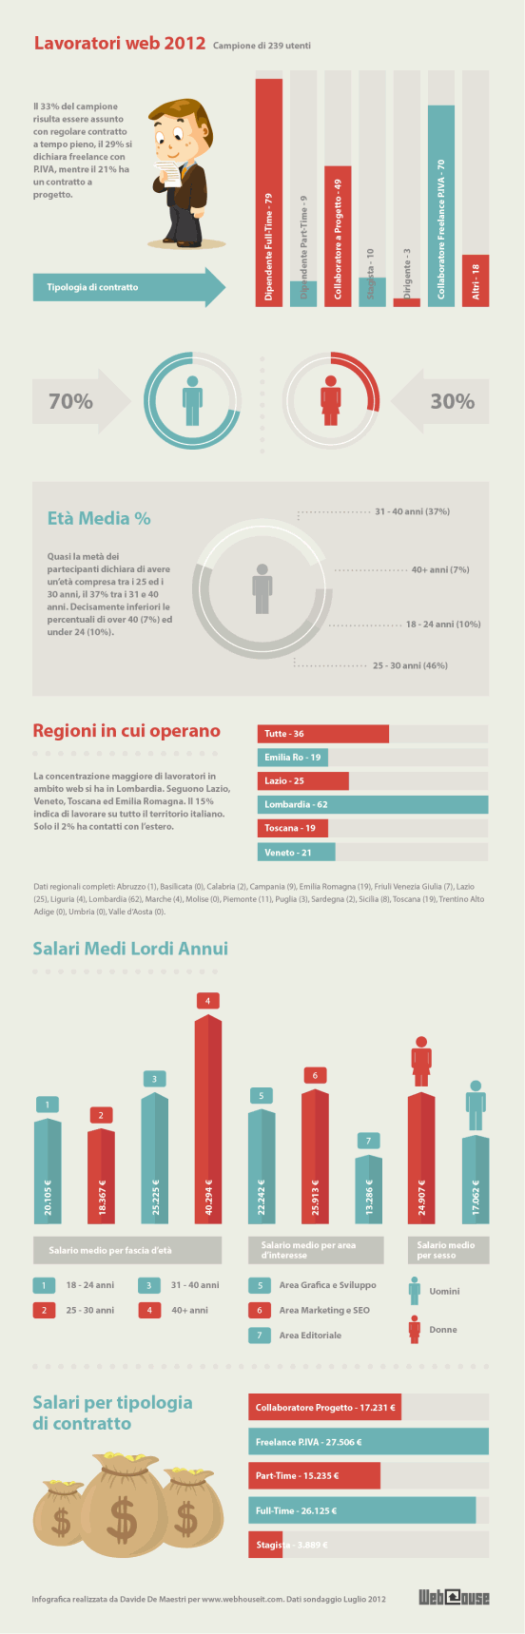 Web Workers in Italy, 2012 - an infographic